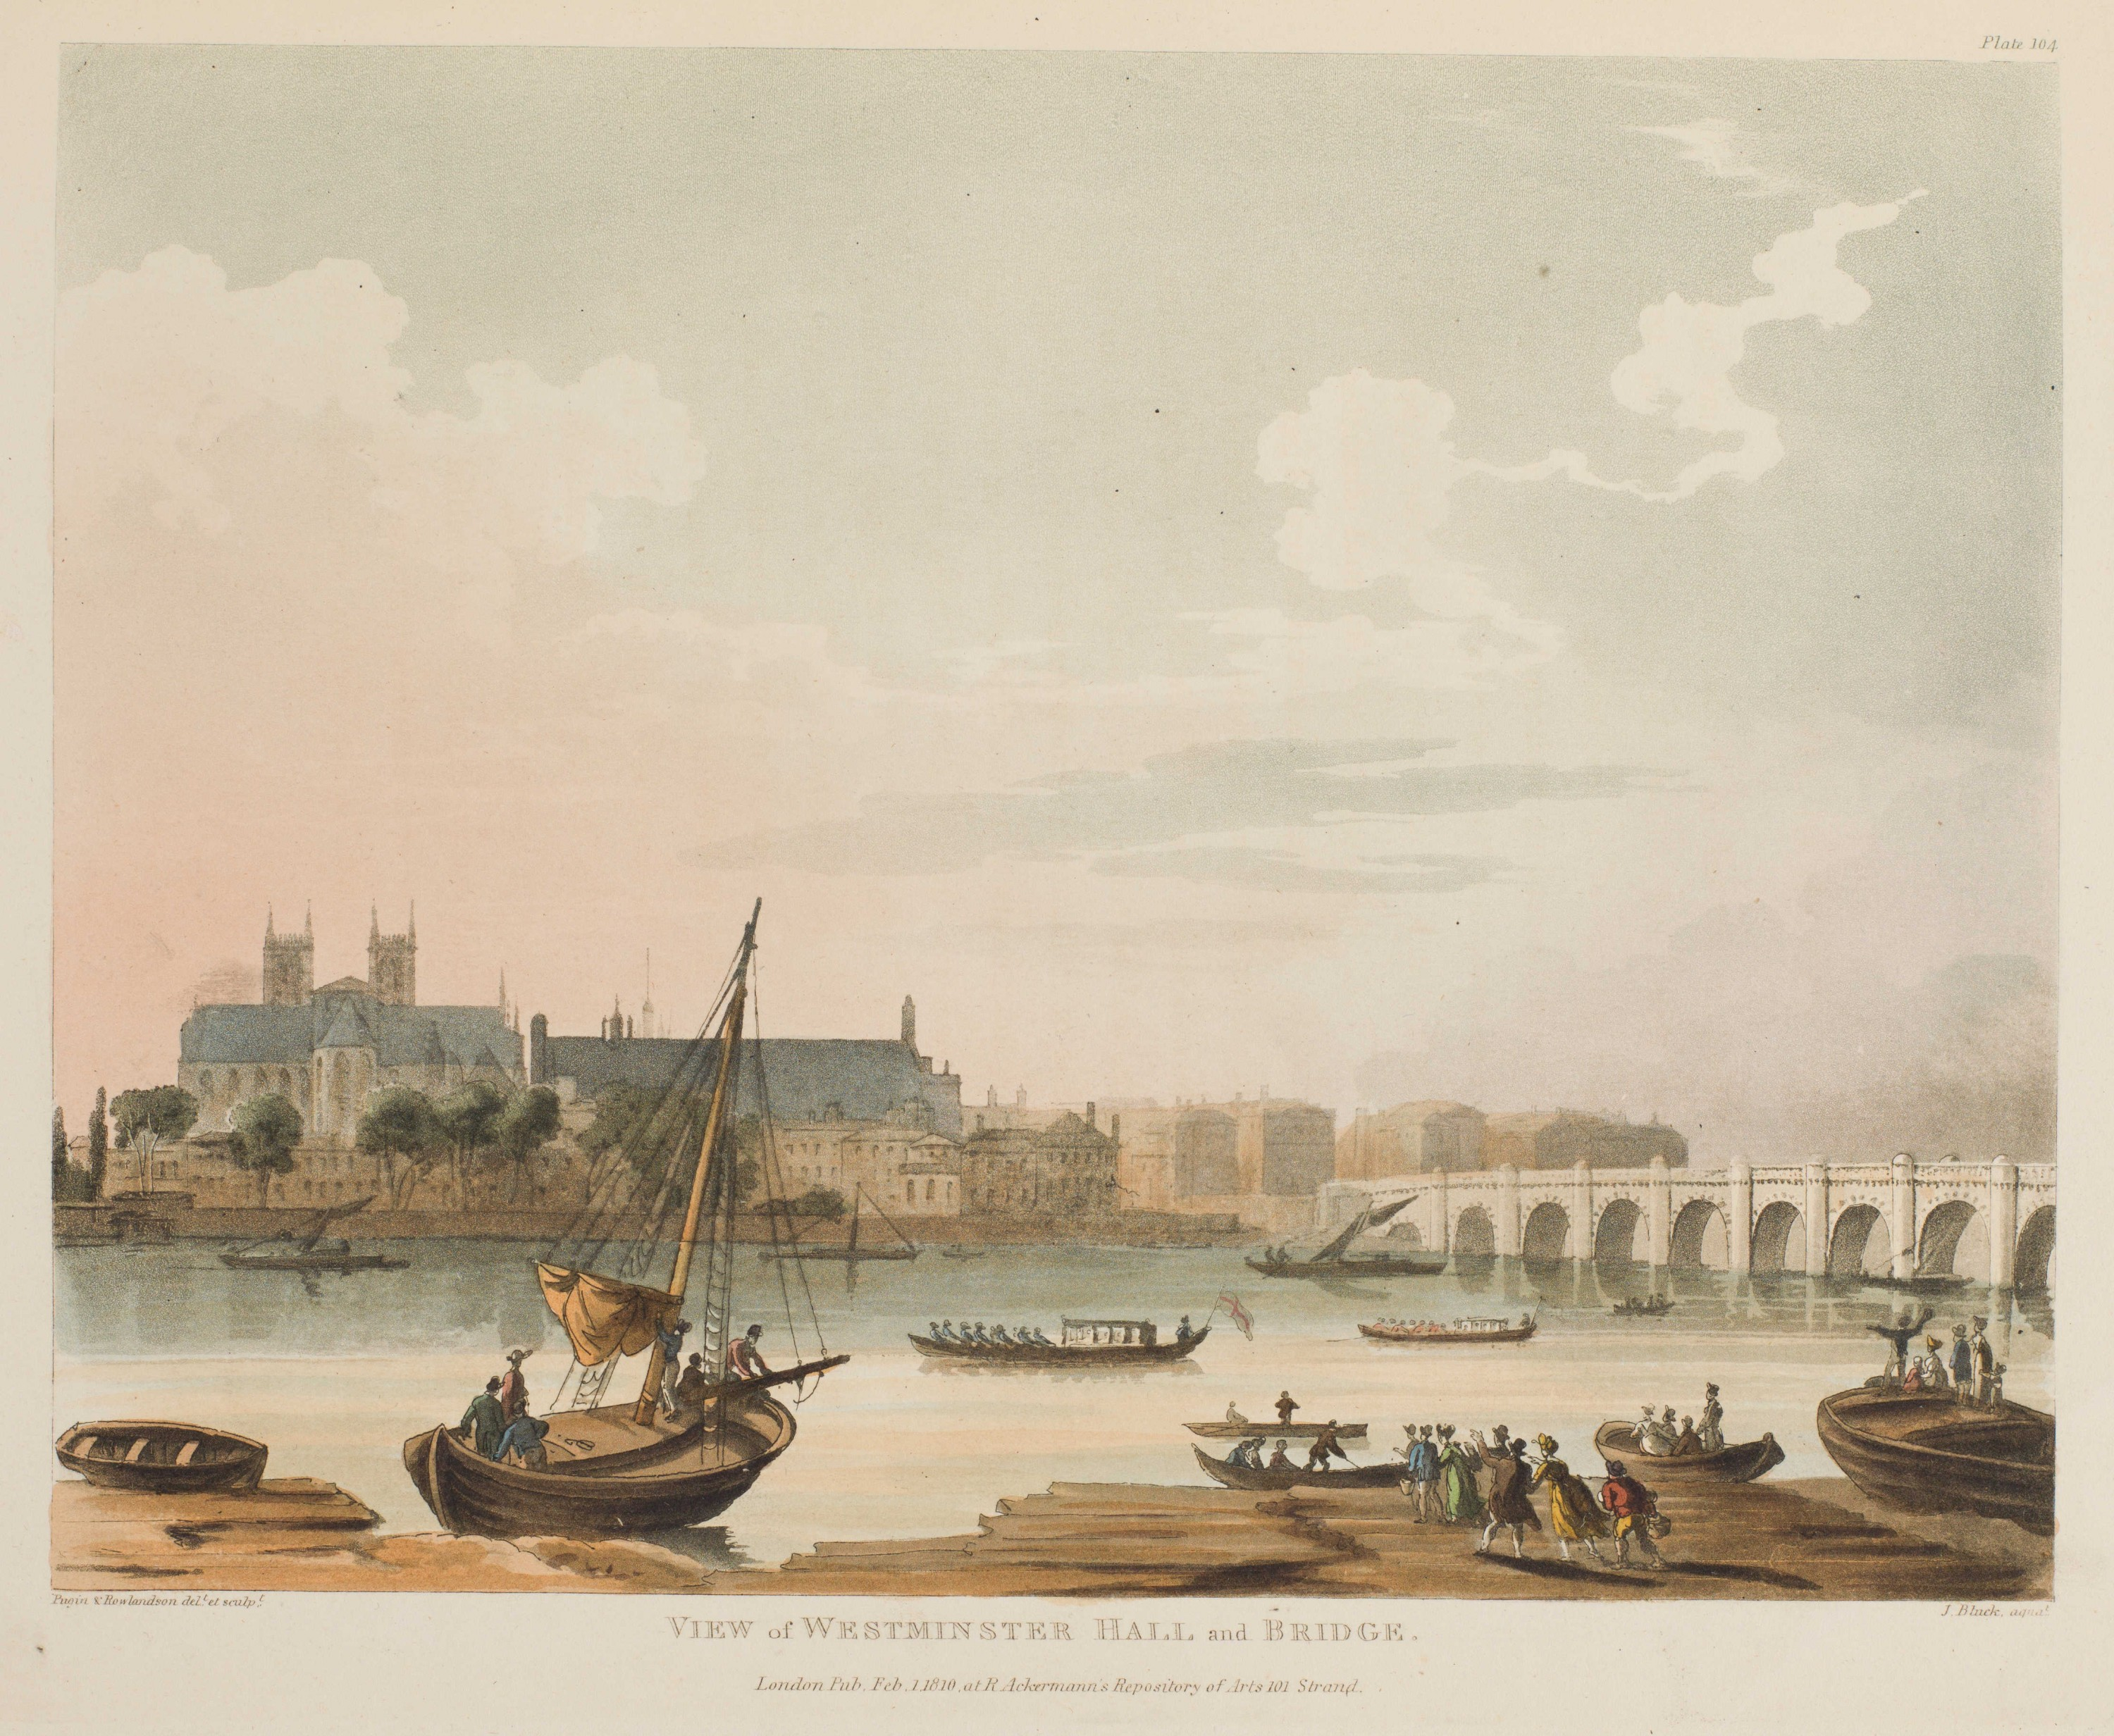 103 - View of Westminster Hall and Bridge